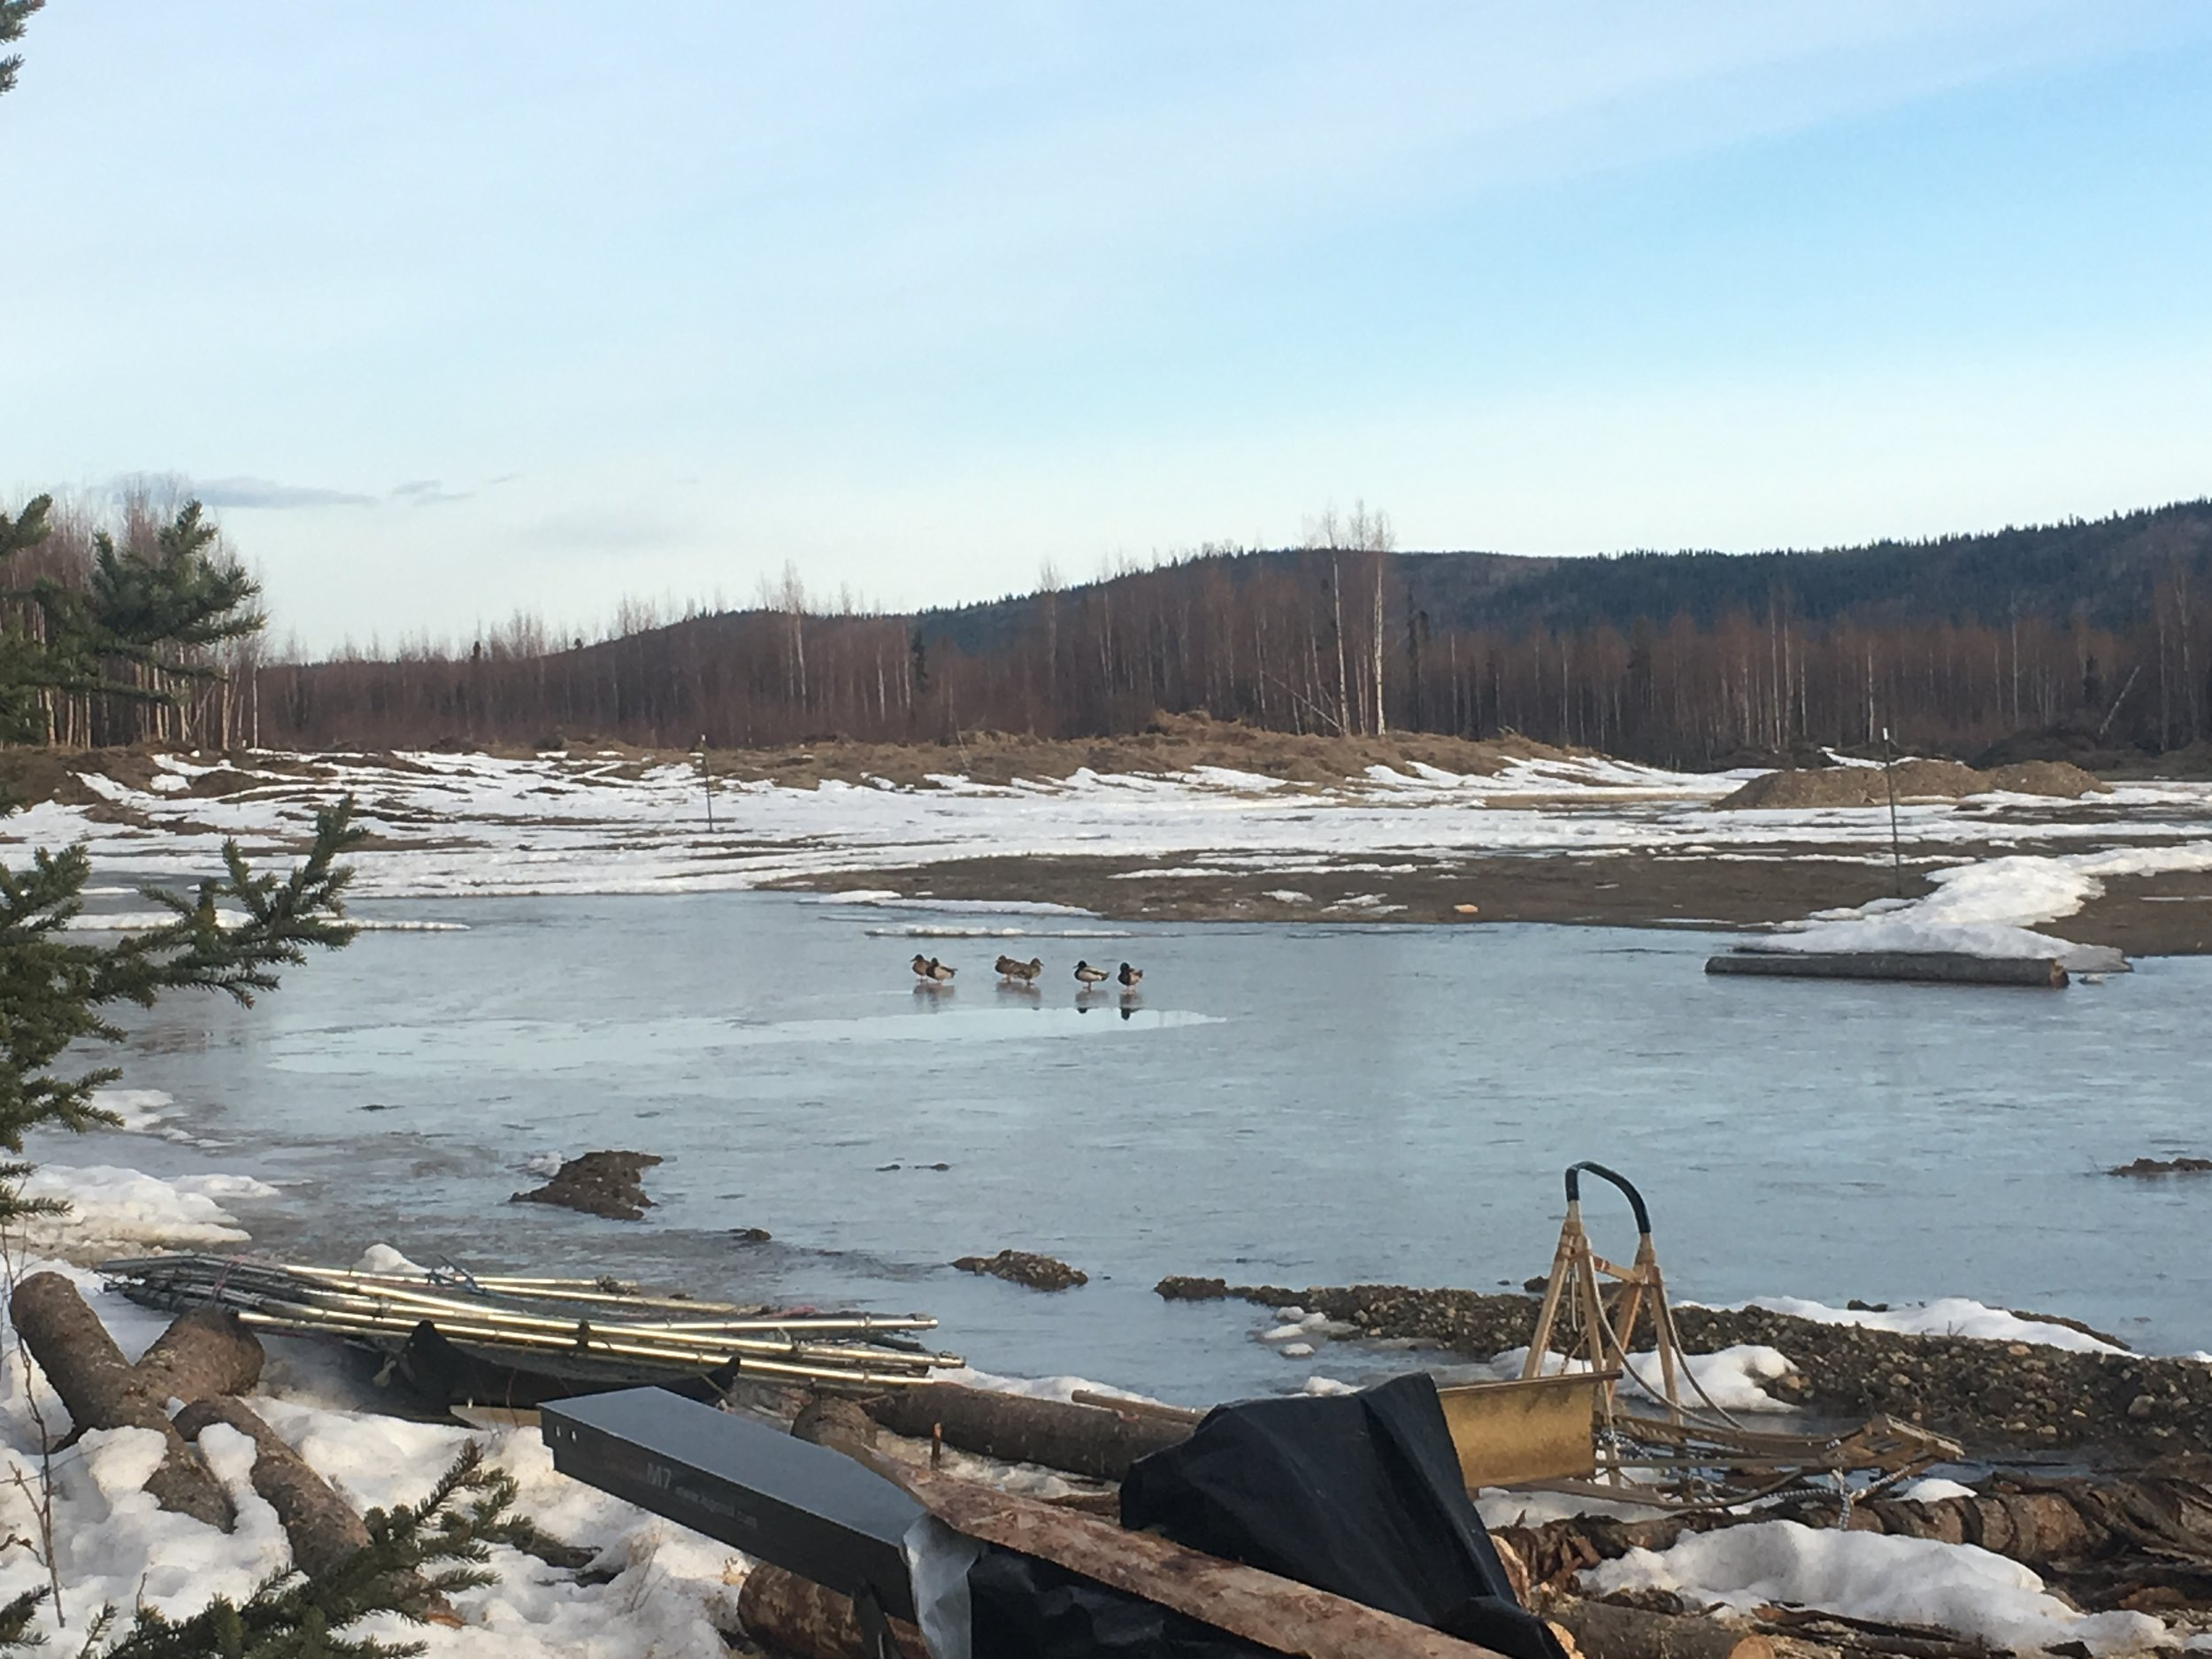 Ducks waiting for the ice to thaw in the morning.